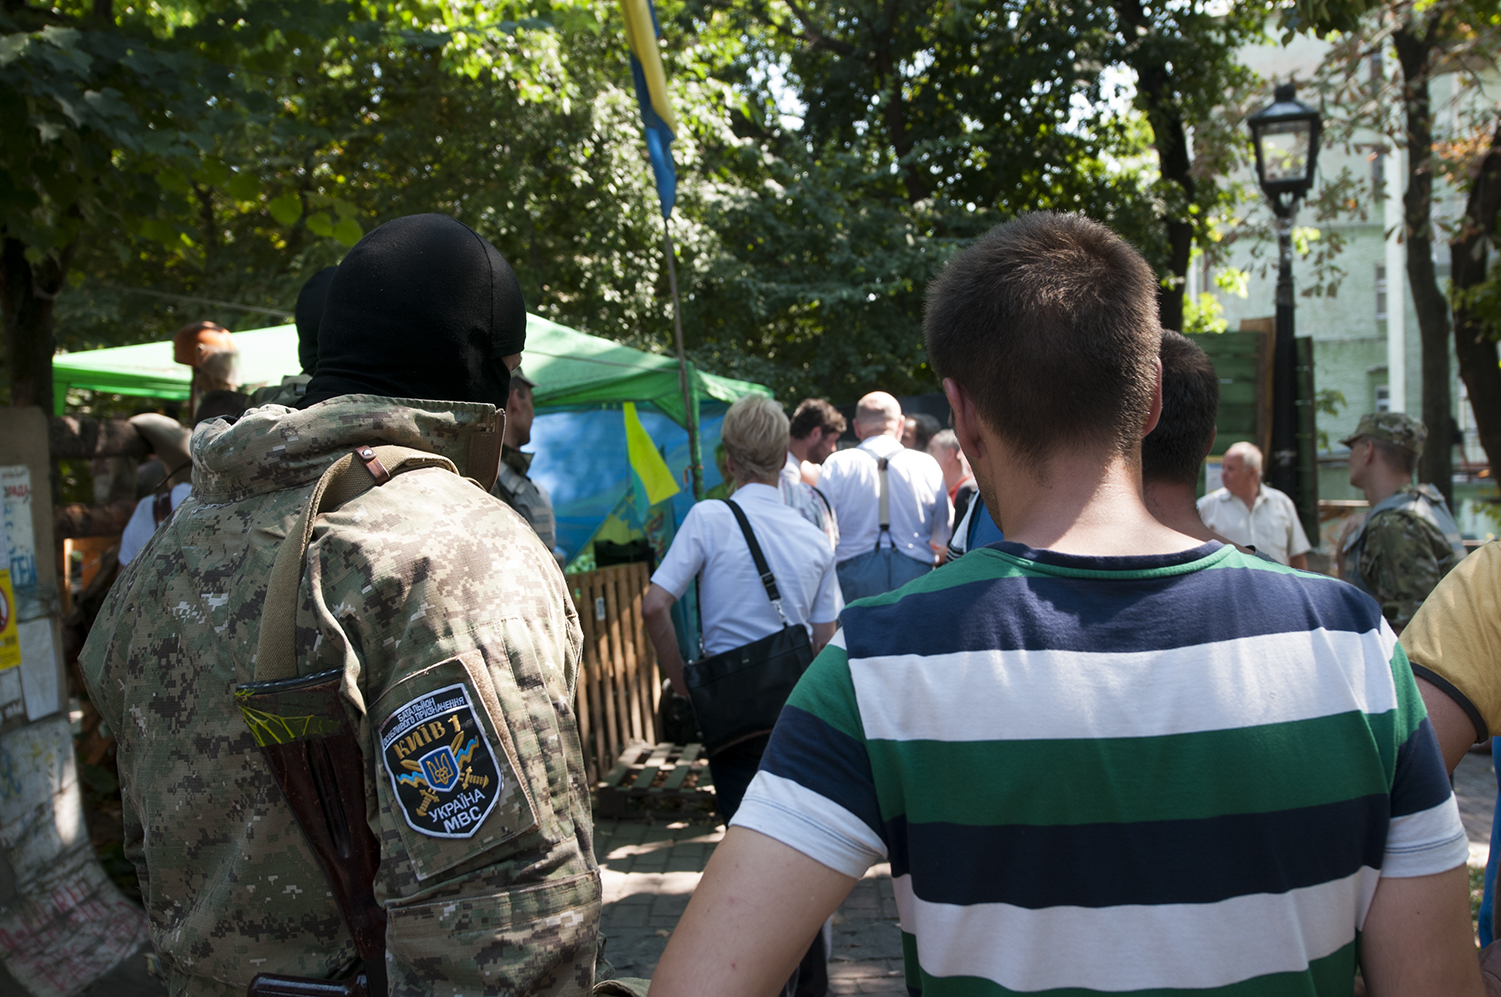 A solider from Kyiv 1 standing next to a civilian outside of Maidan Square